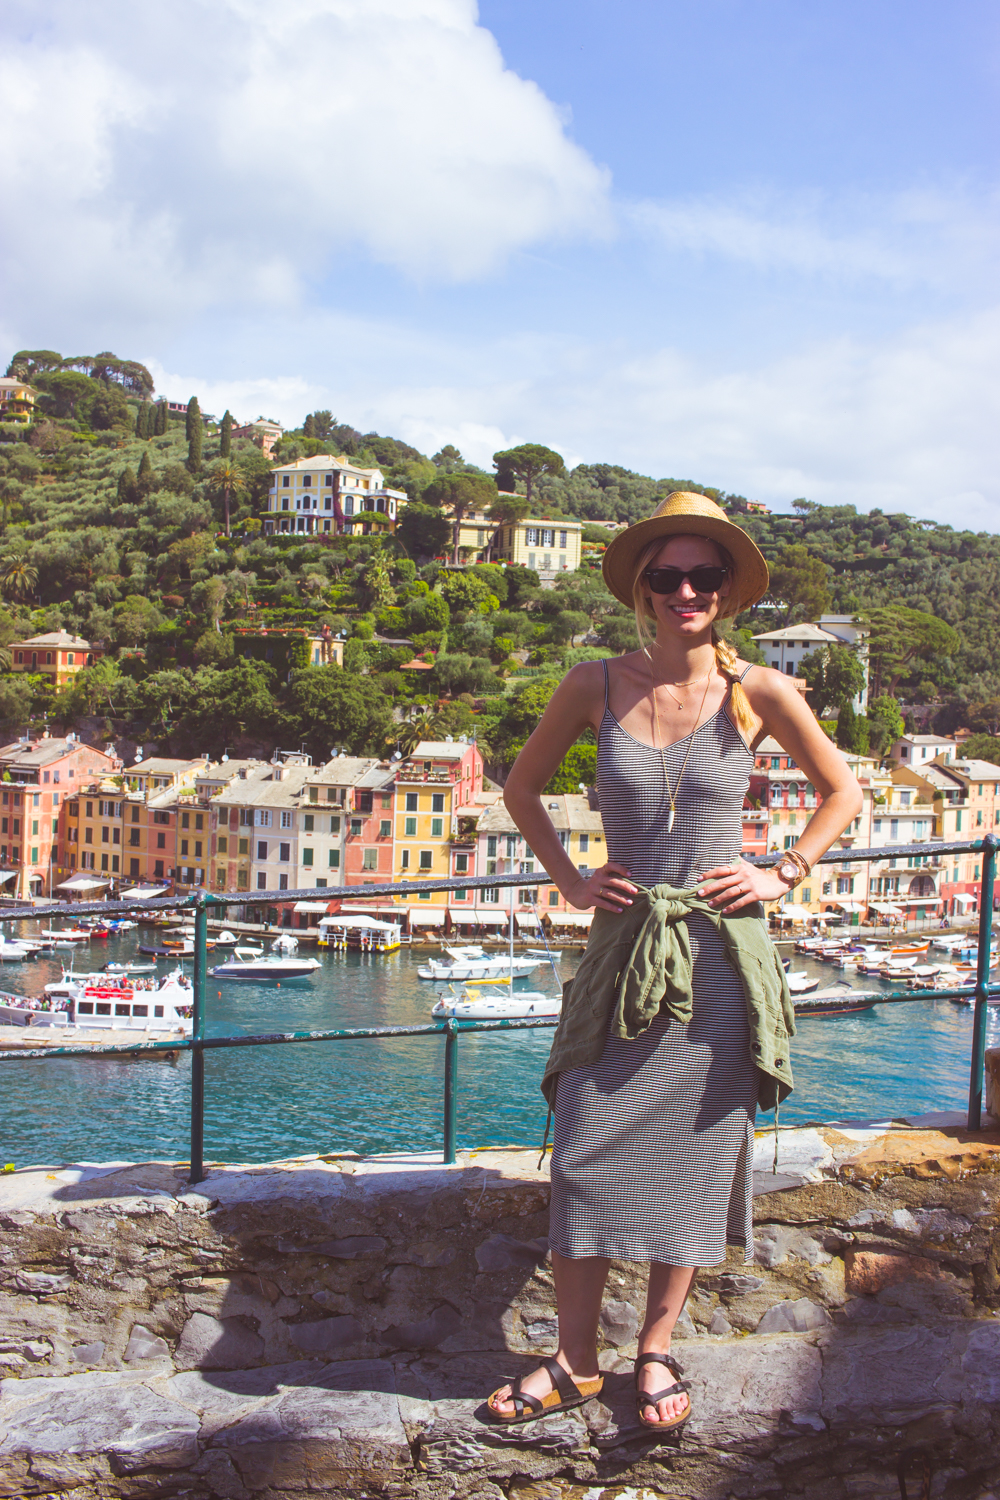 livvyland-blog-olivia-watson-austin-texas-fashion-travel-blogger-princess-royal-mediterranean-cruise-portofino-cinque-terre-italy-what-to-do-see-eat-6